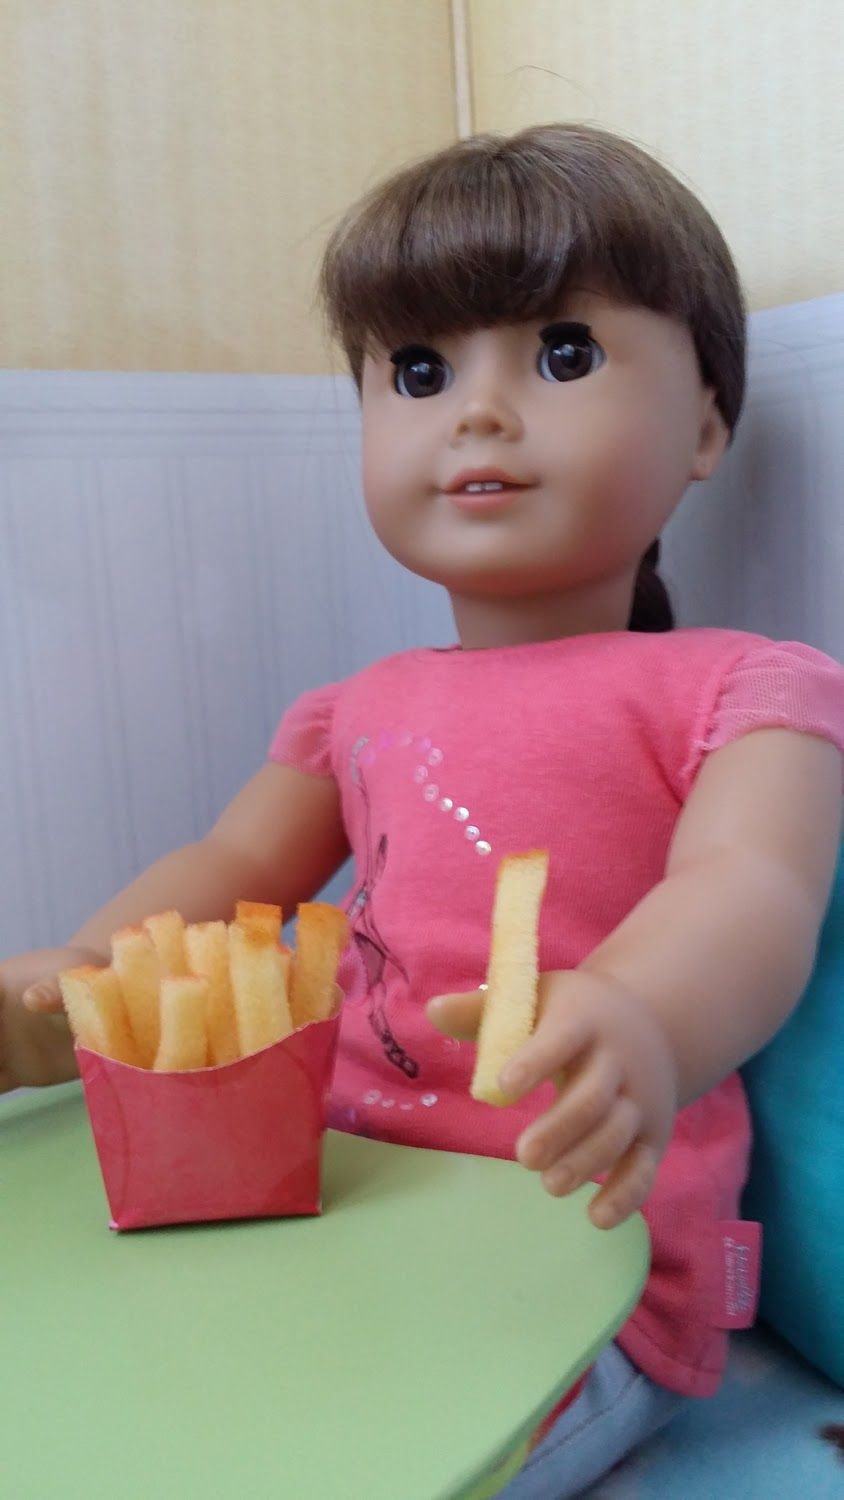 Craft make doll french fries with images american